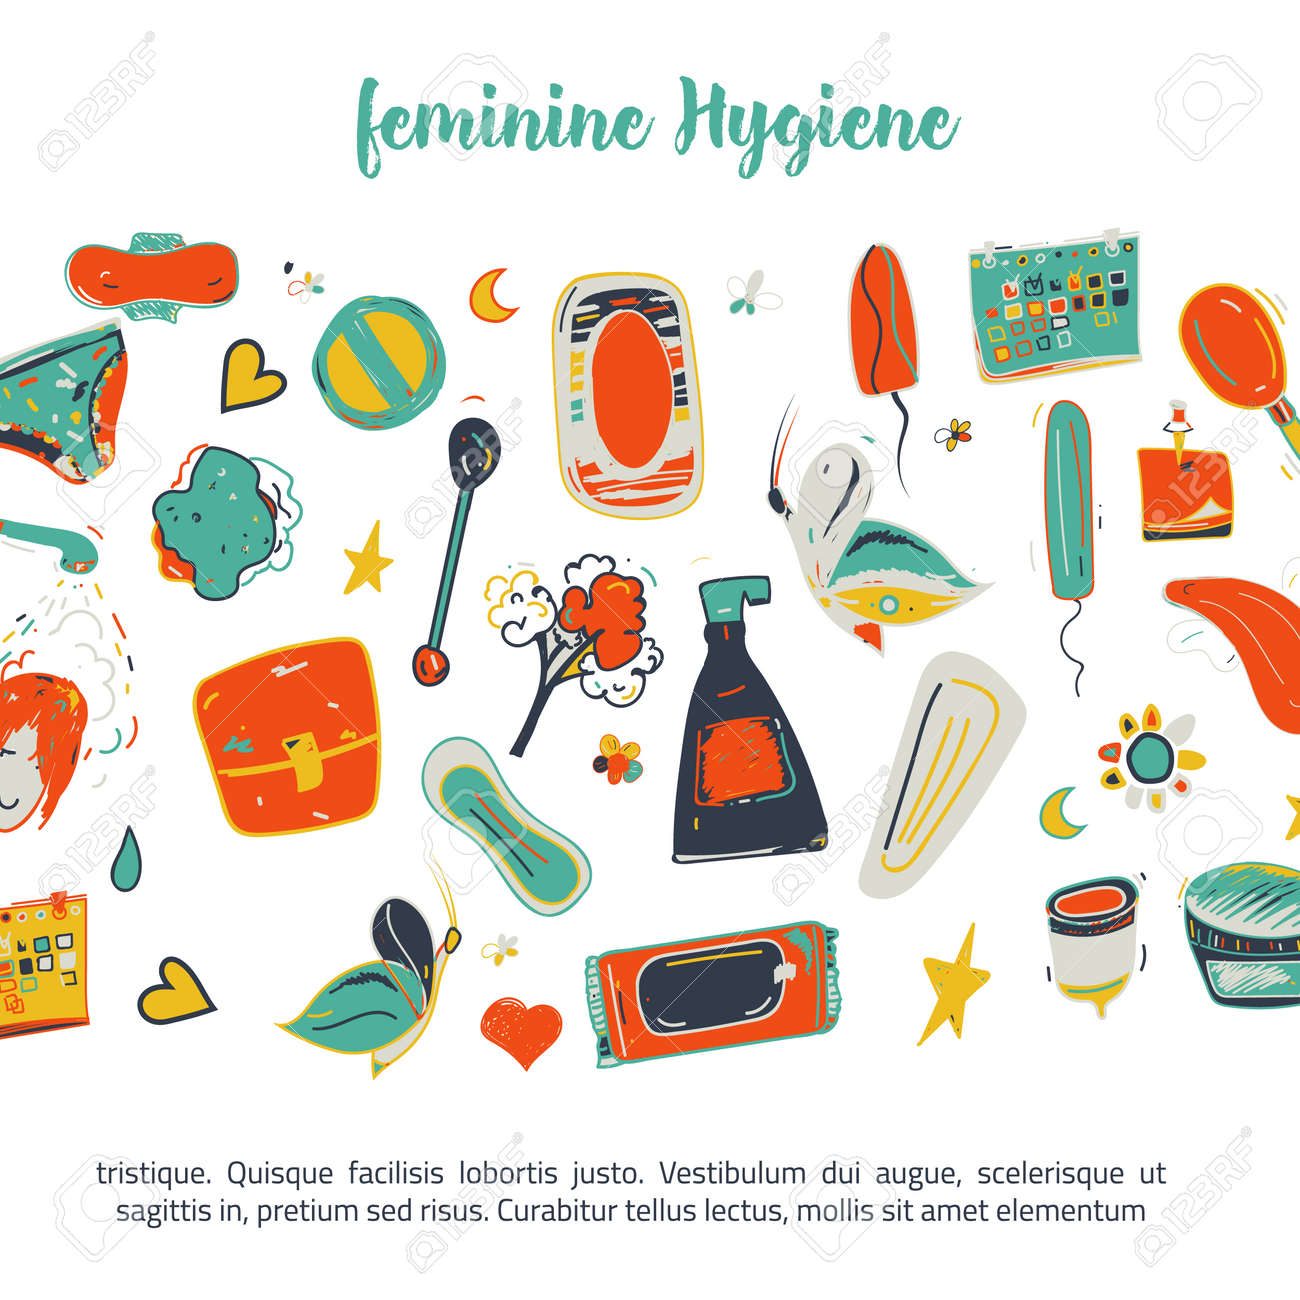 Sketch Colorful Feminine Hygiene Funny Banner Design With Tampon Royalty Free Cliparts Vectors And Stock Illustration Image 63393547